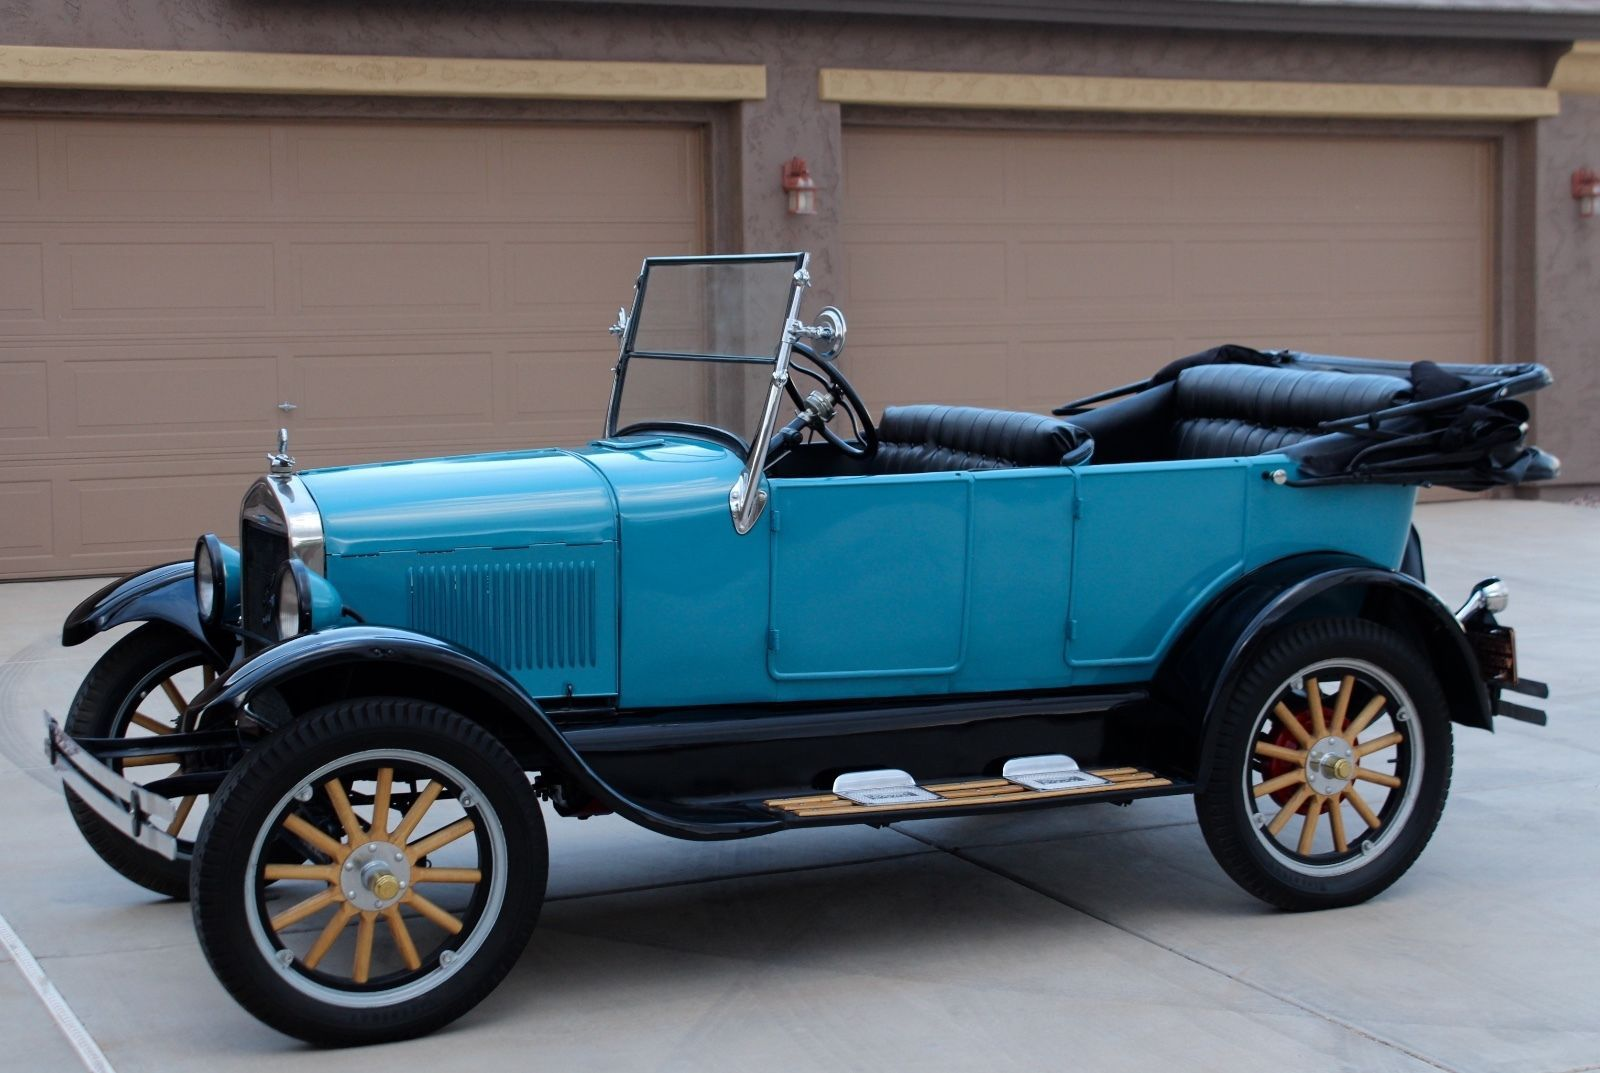 1927 Ford Model T 4 Door Touring Oldtimer In Ebay Motors Cars Trucks Ford Model T Ebay Ford Models Ford Classic Cars Retro Cars